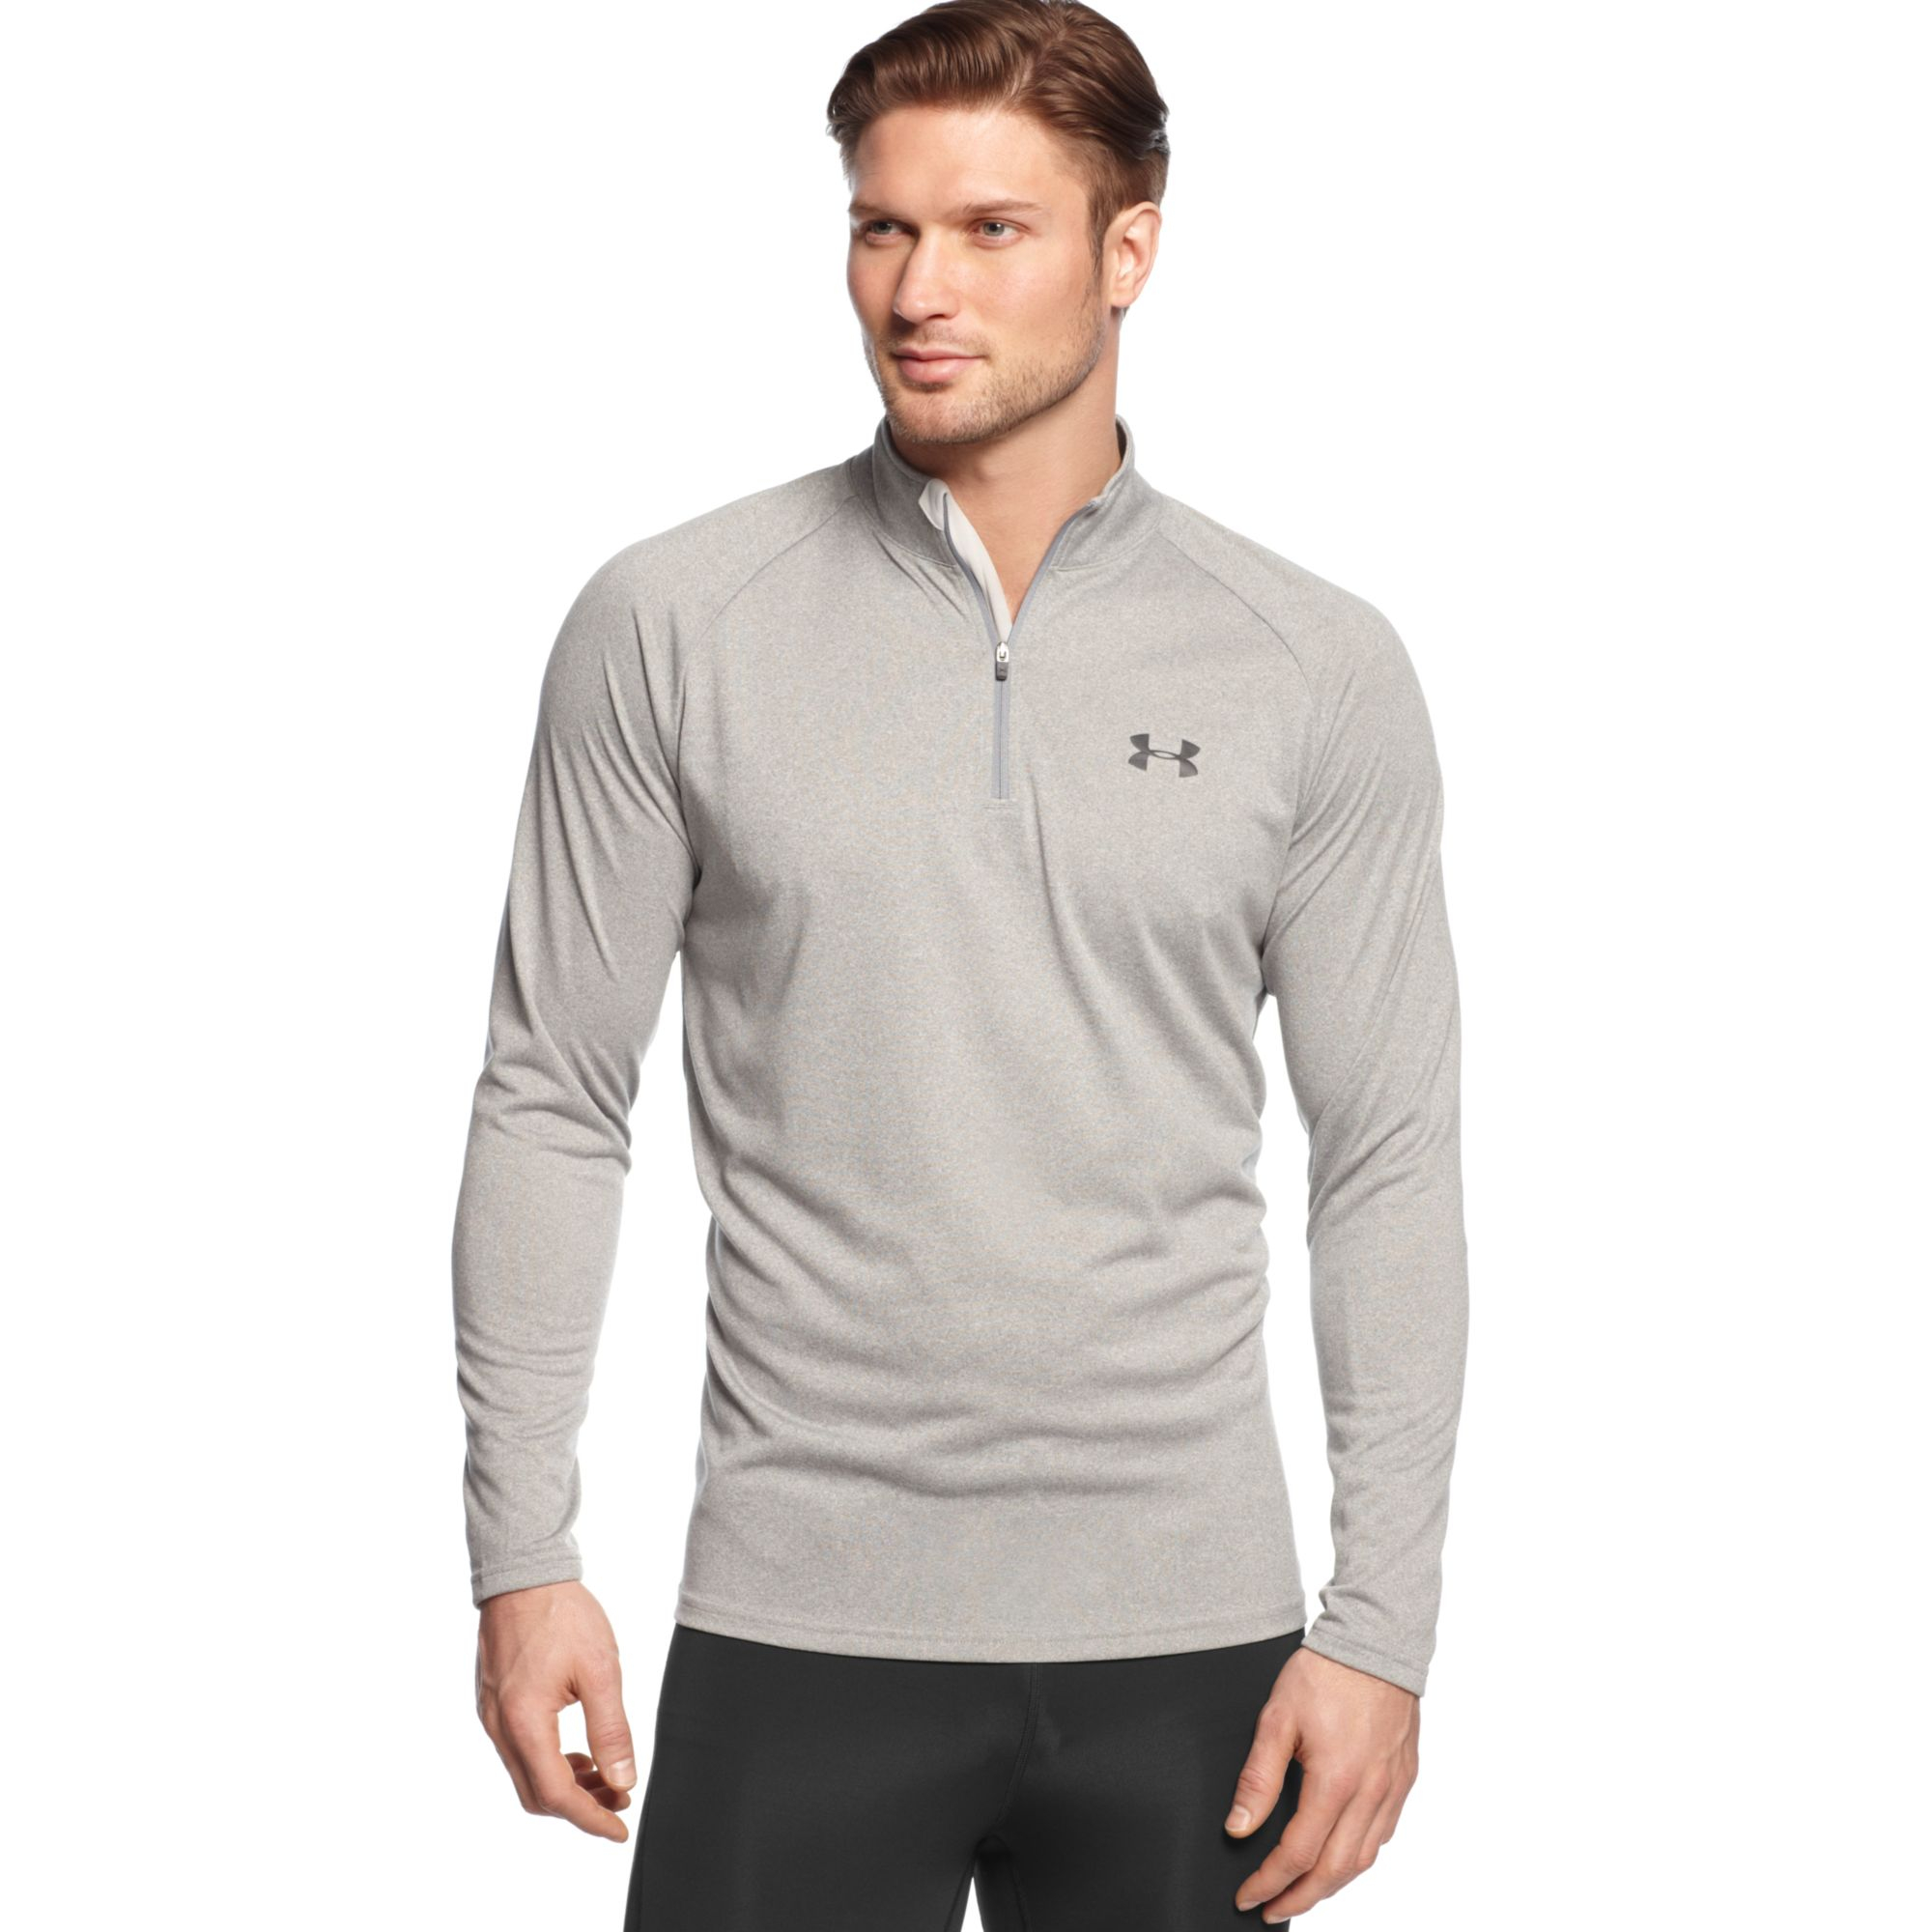 Lyst - Under Armour Long Sleeve Quarterzip Pullover in Gray for Men 39ce94e27aa4